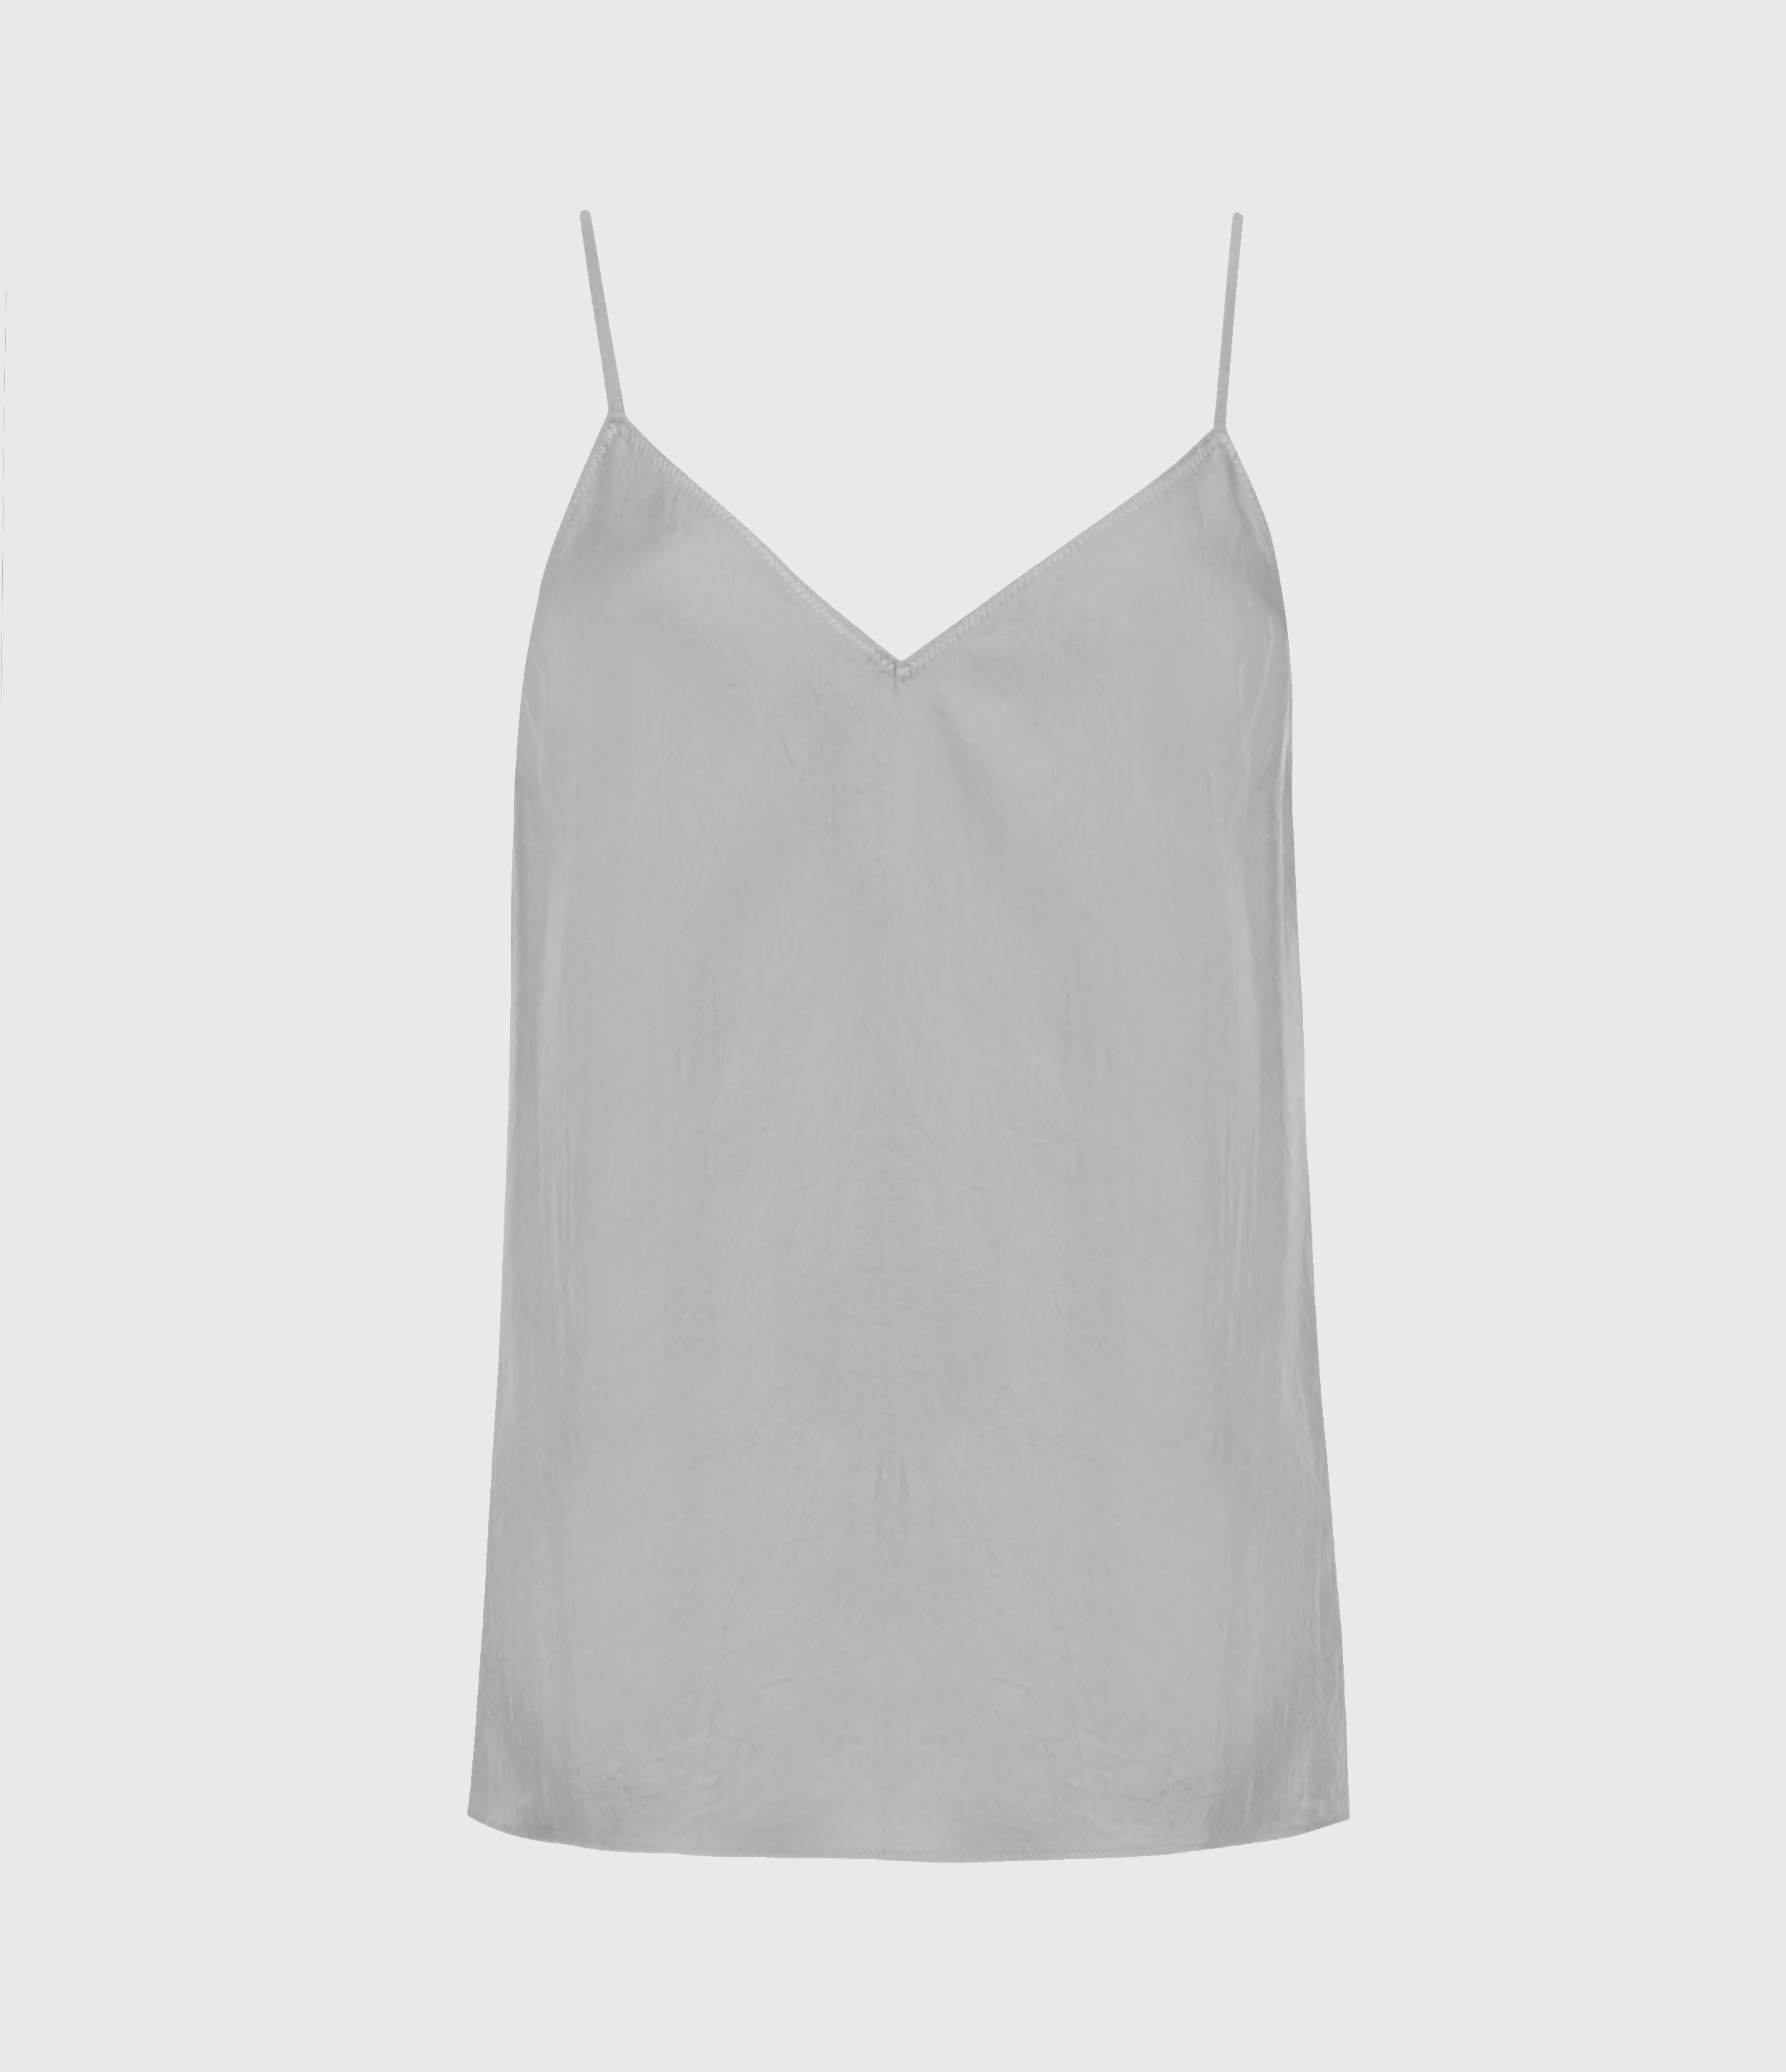 AllSaints Women's Tami Top, Muted Grey, Size: 2